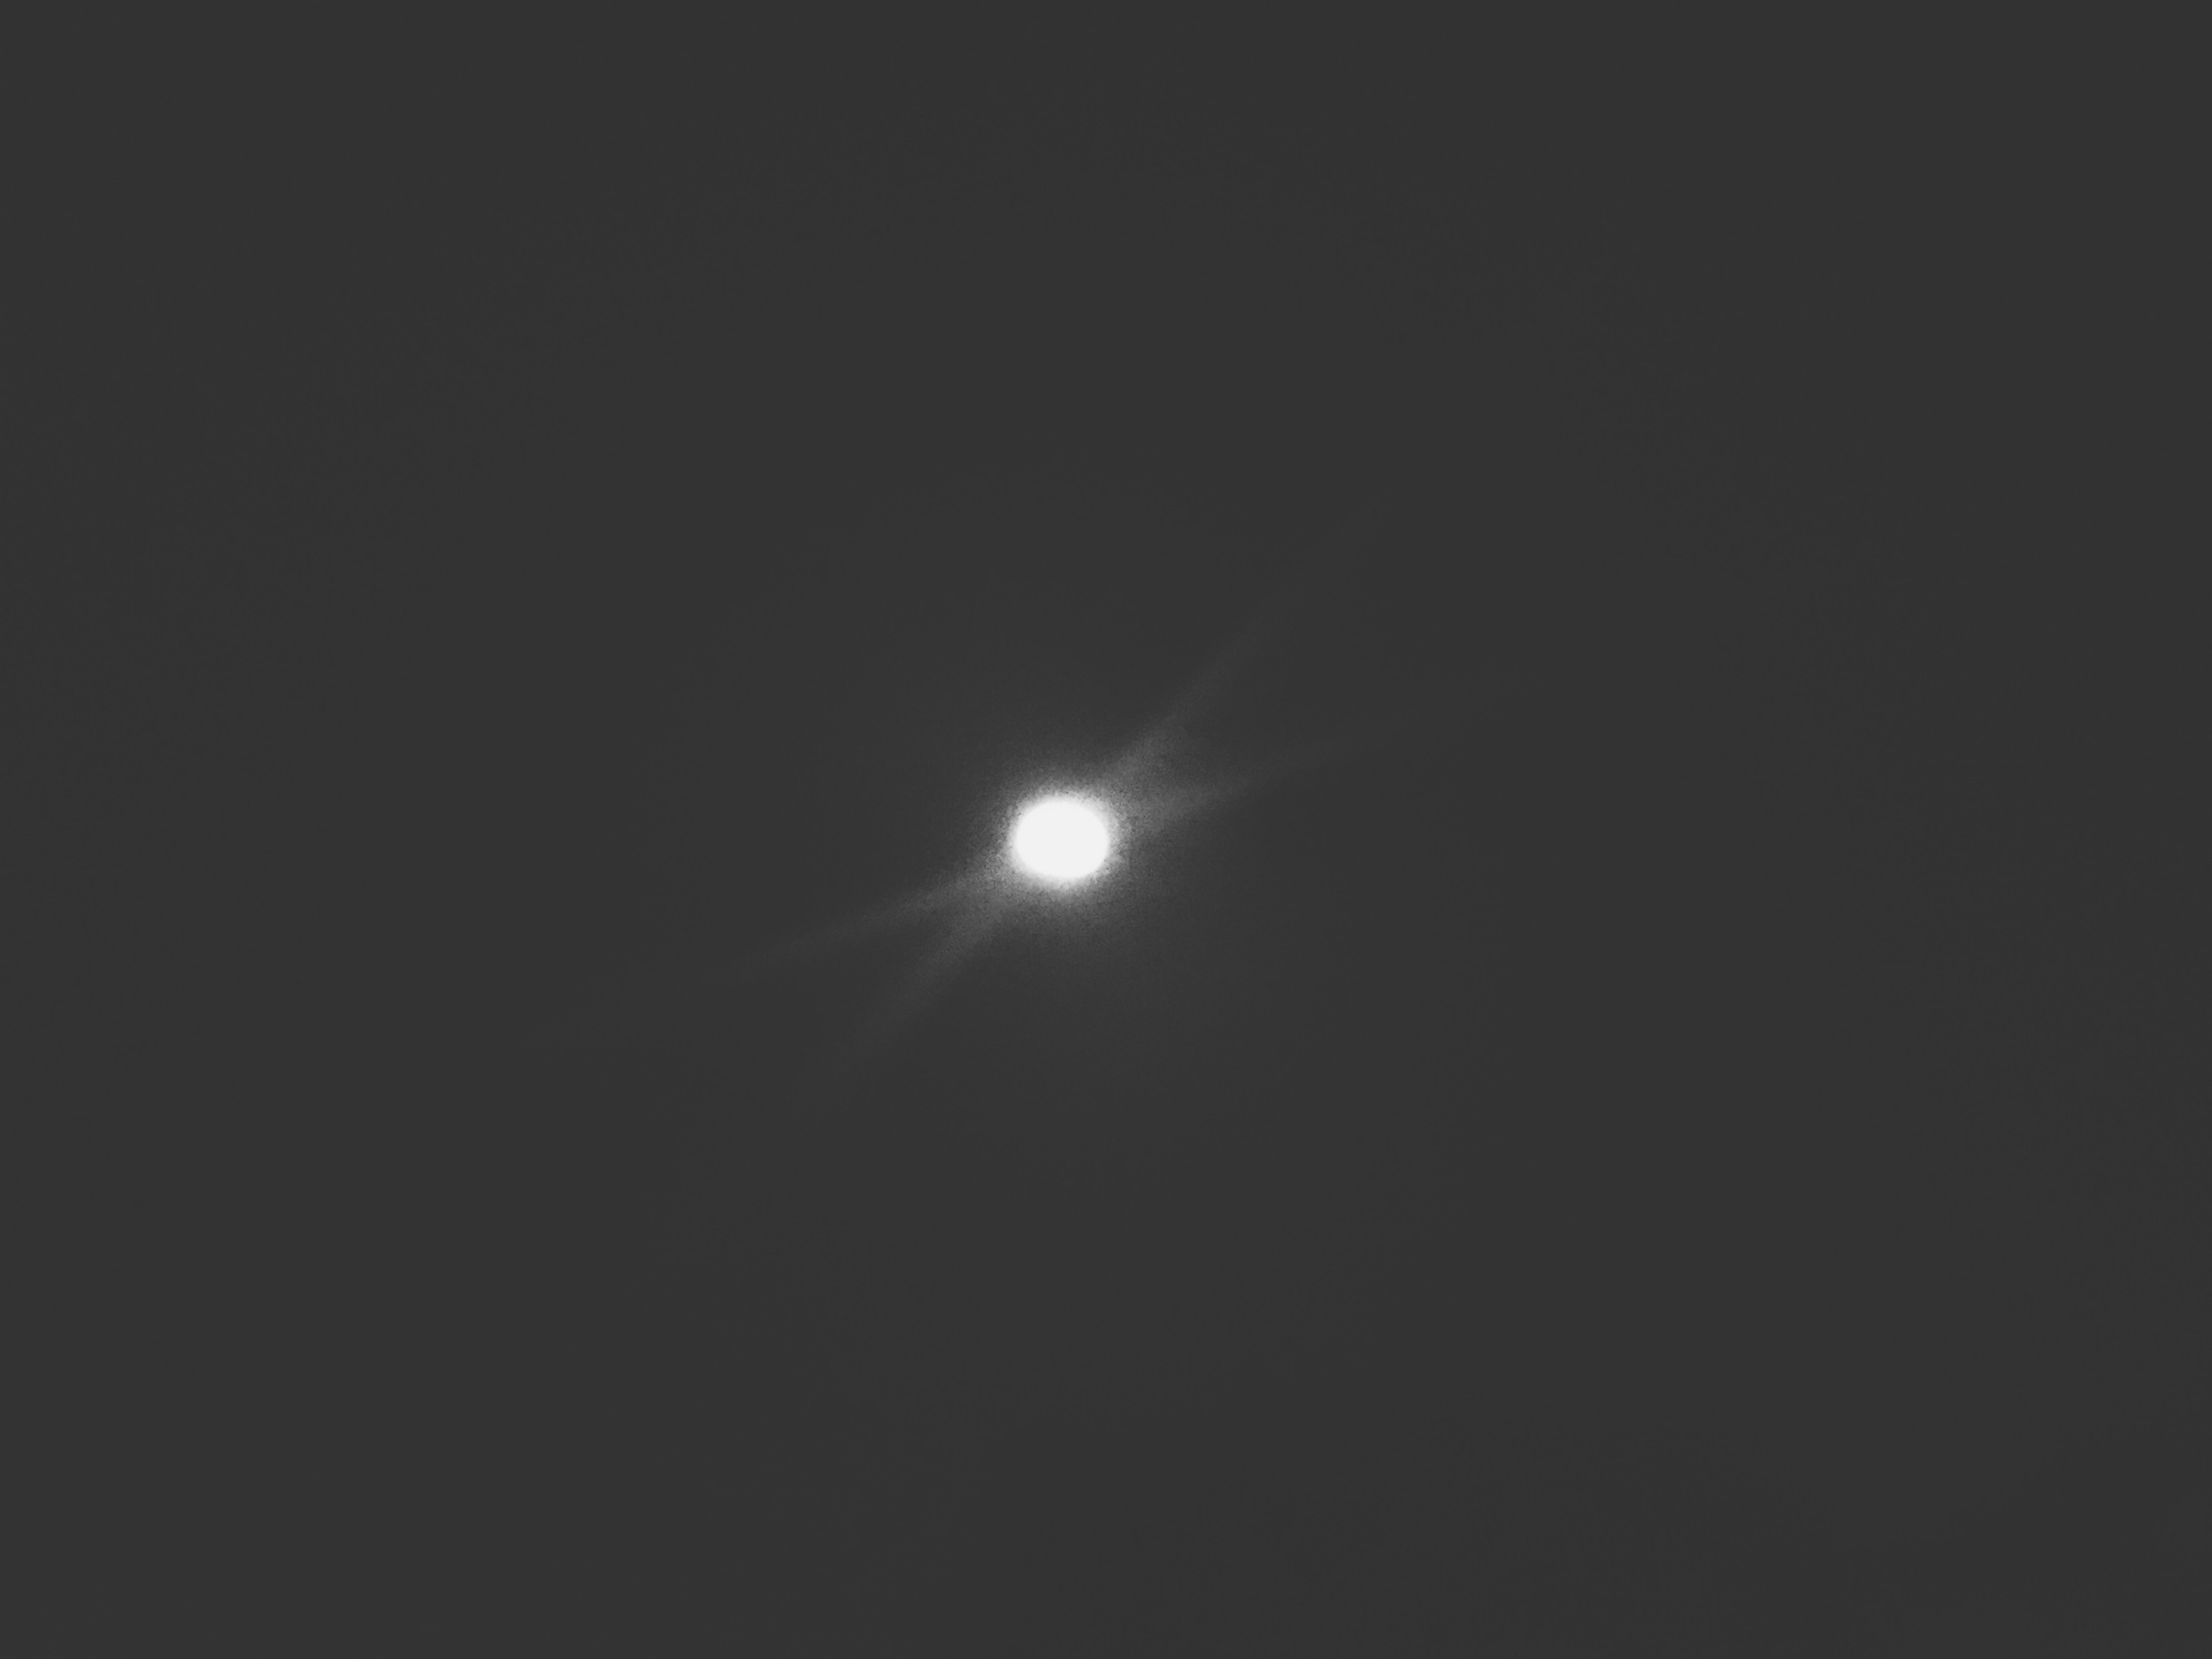 My crap photo of the Blue Moon that I insist on publishing to prove to myself that I'm not scared of future full moons.